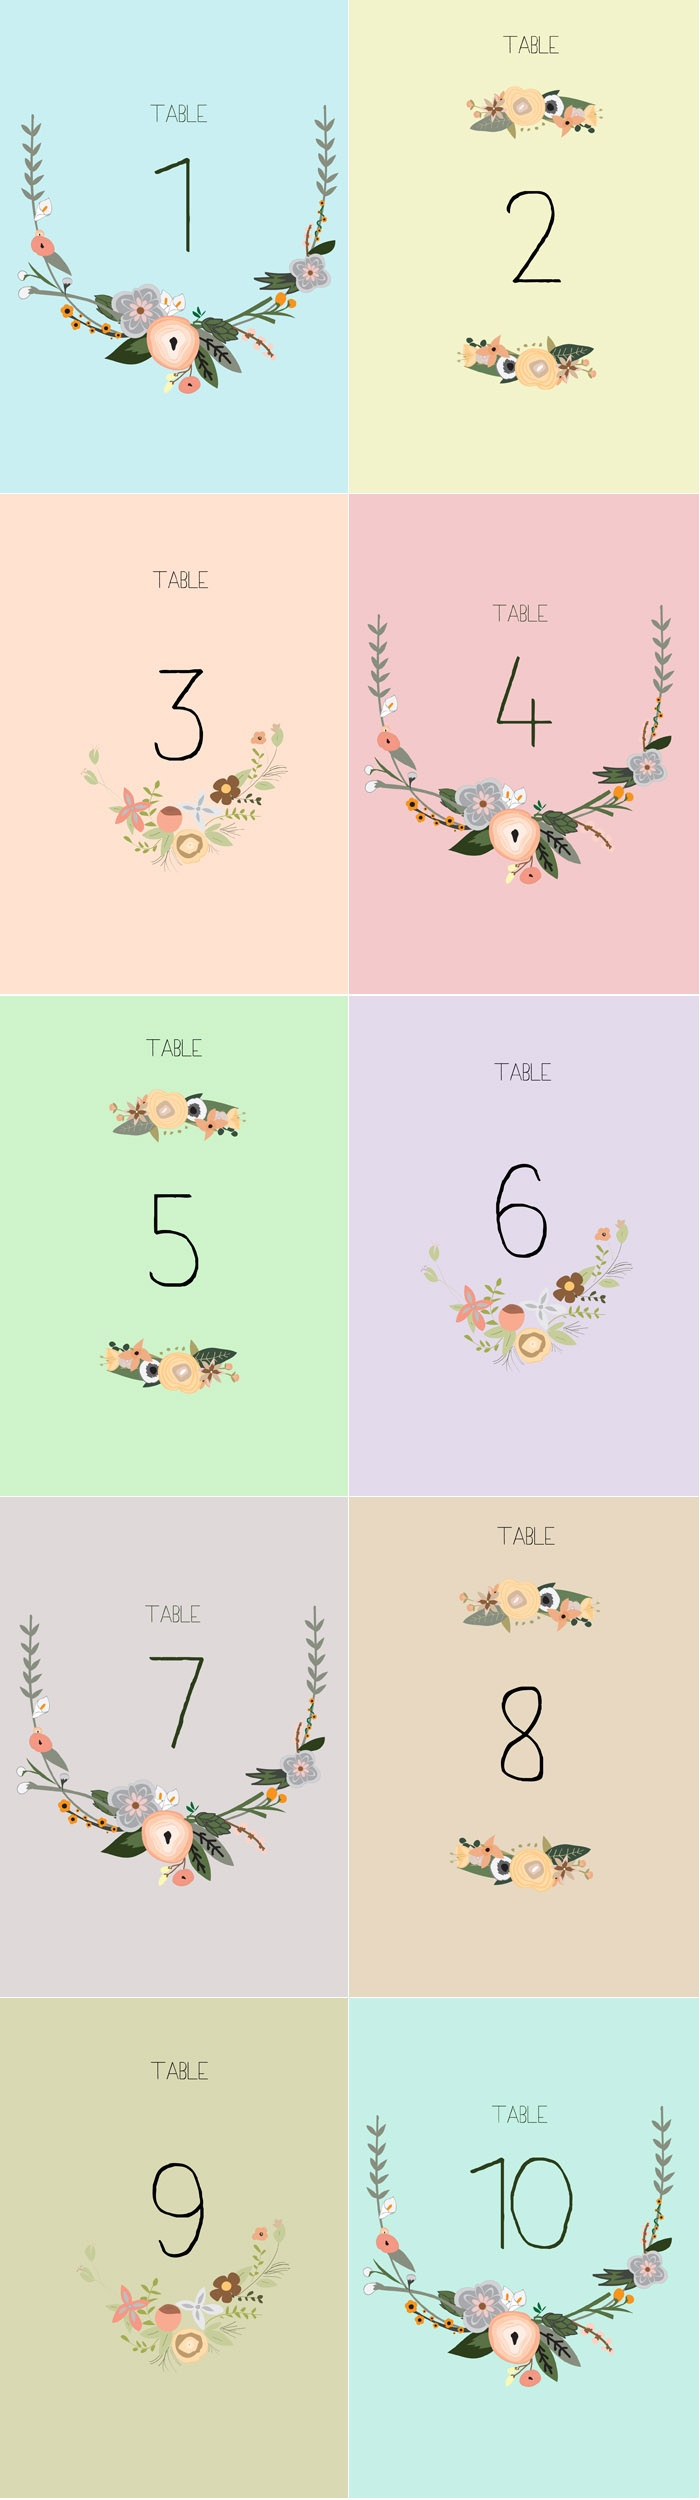 Free Printable Table Numbers 1 30 (84+ Images In Collection) Page 1 - Free Printable Table Numbers 1 30